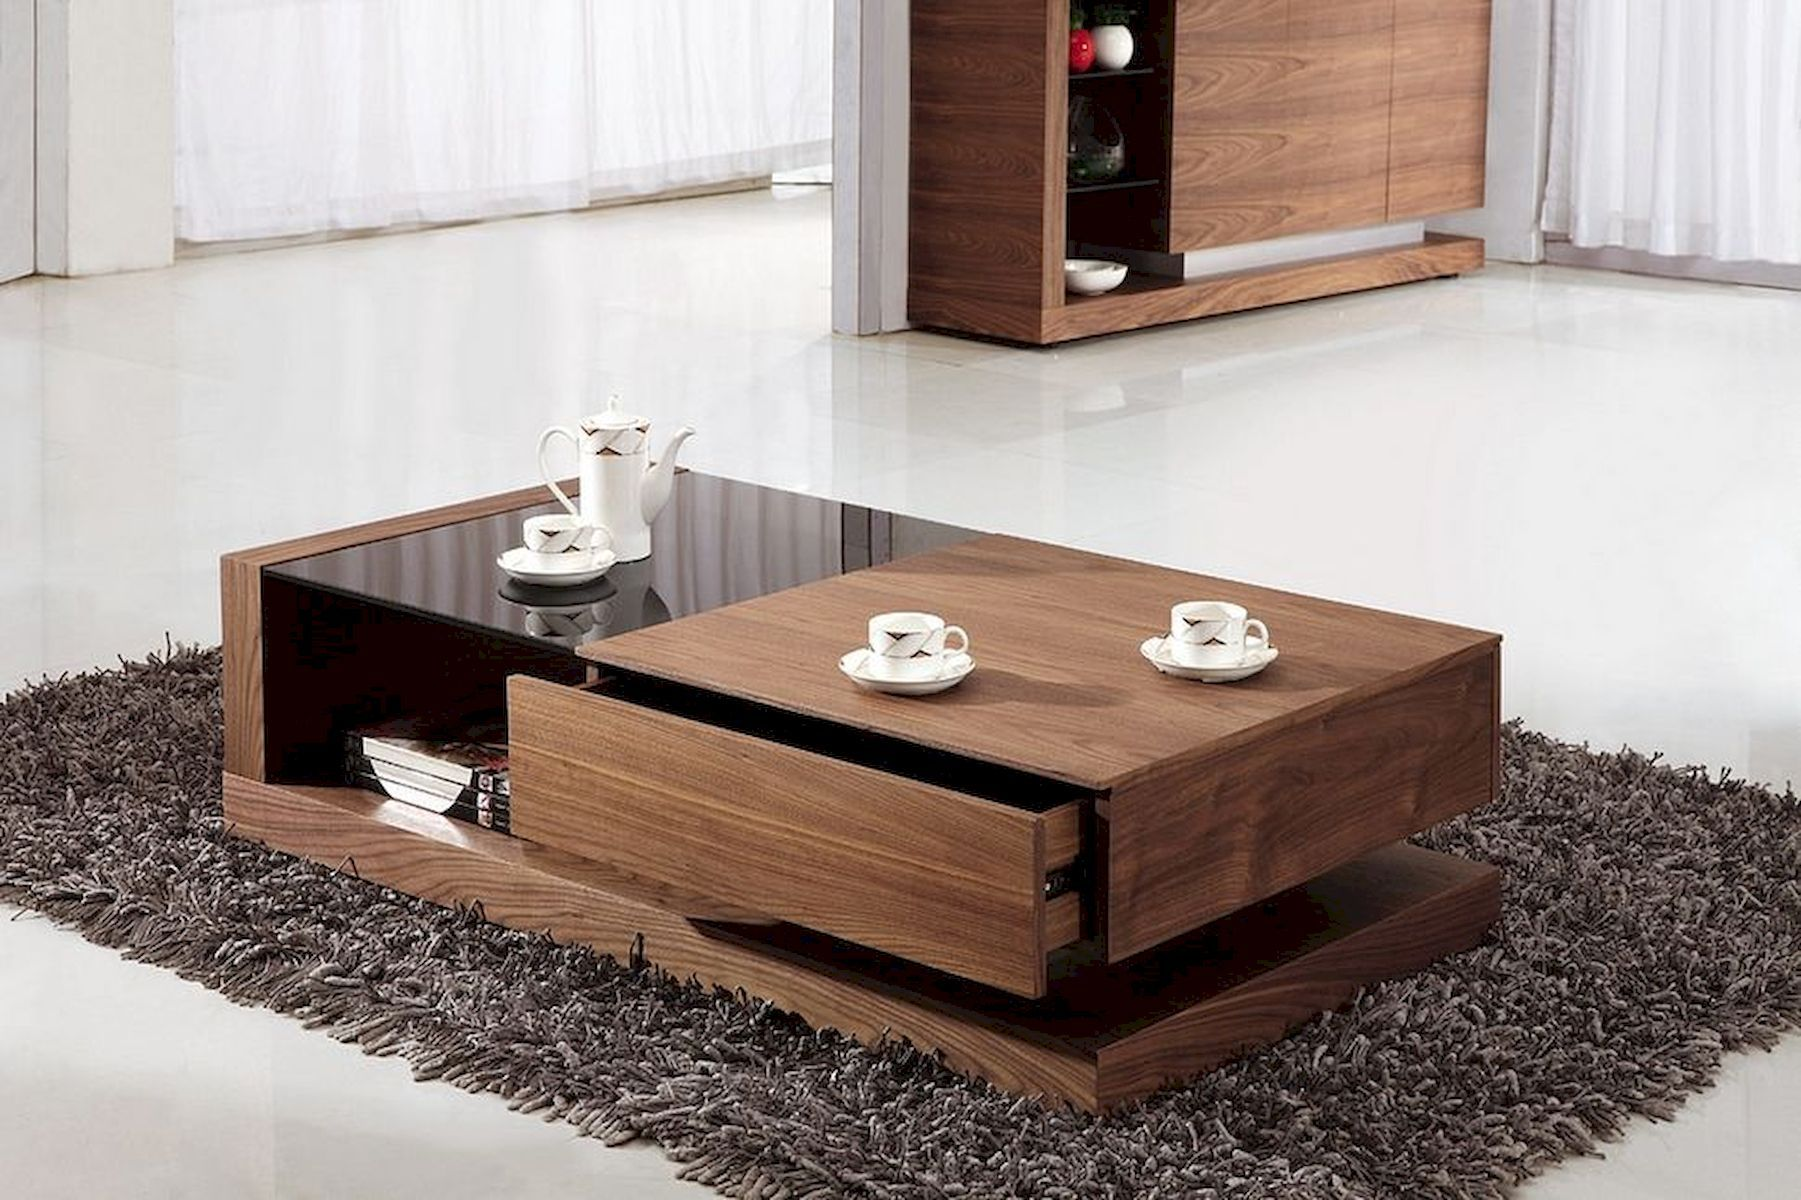 Coffee Table Ideas For Your Living Room Jihanshanum Wooden Coffee Table Designs Coffee Table Design Modern Coffee Table With Drawers [ 1200 x 1801 Pixel ]